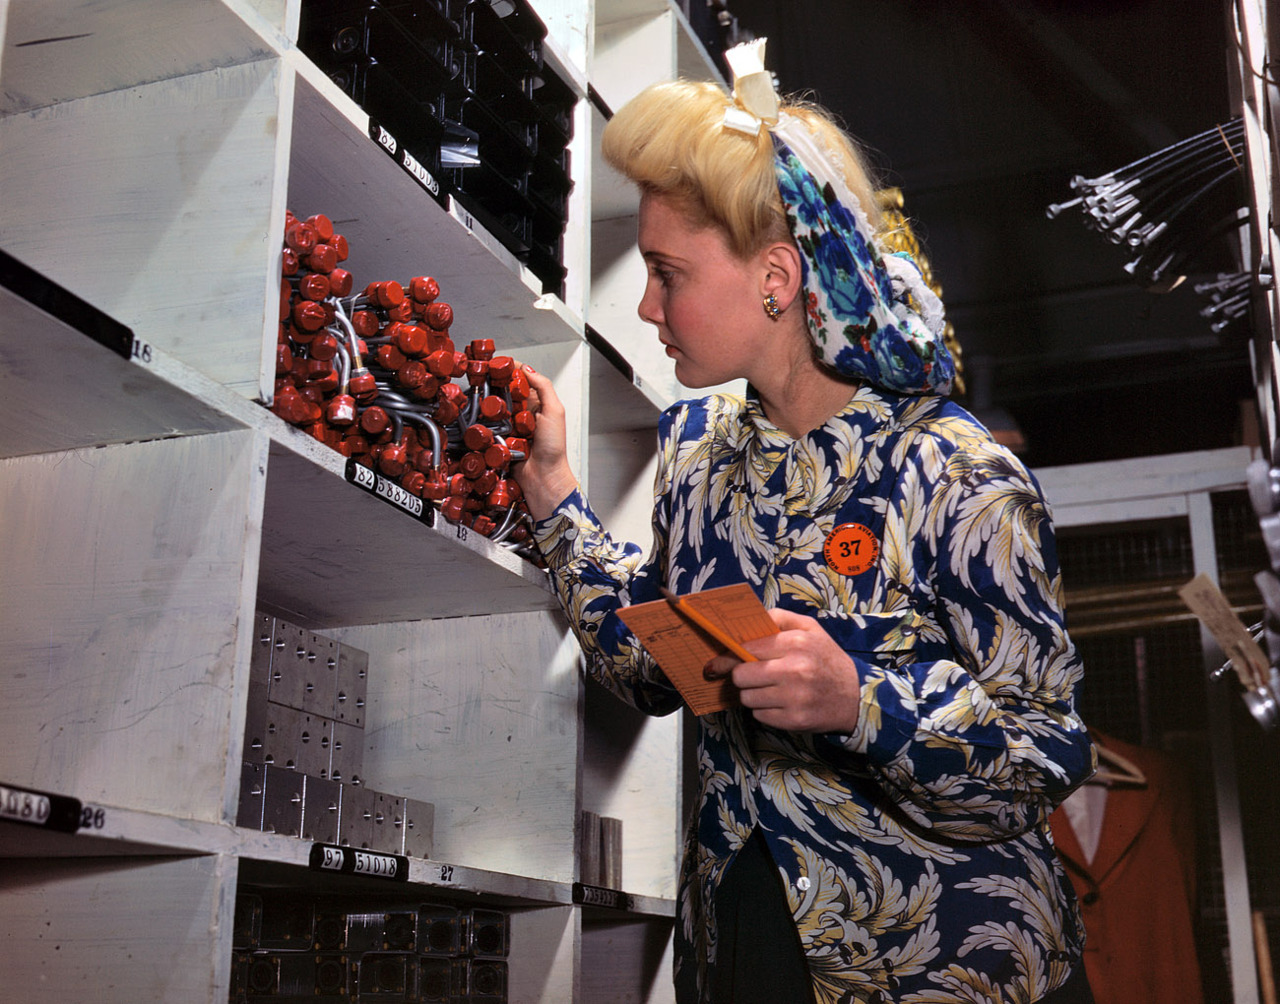 "October 1942. ""Clerk in North American Aviation stockroom, checking to see if the proper numbers of parts were received and placed in the proper bin. Inglewood, California. This plant produces the battle-tested B-25 (Billy Mitchell) bomber, used in General Doolittle's raid on Tokyo, and the P-51 (Mustang) fighter plane which was first brought into prominence by the British raid on Dieppe."" 4x5 Kodachrome transparency by Alfred Palmer. (via shorpy)   70 years later, and I think she is the most fashionable, fabulous woman I have seen in ages."